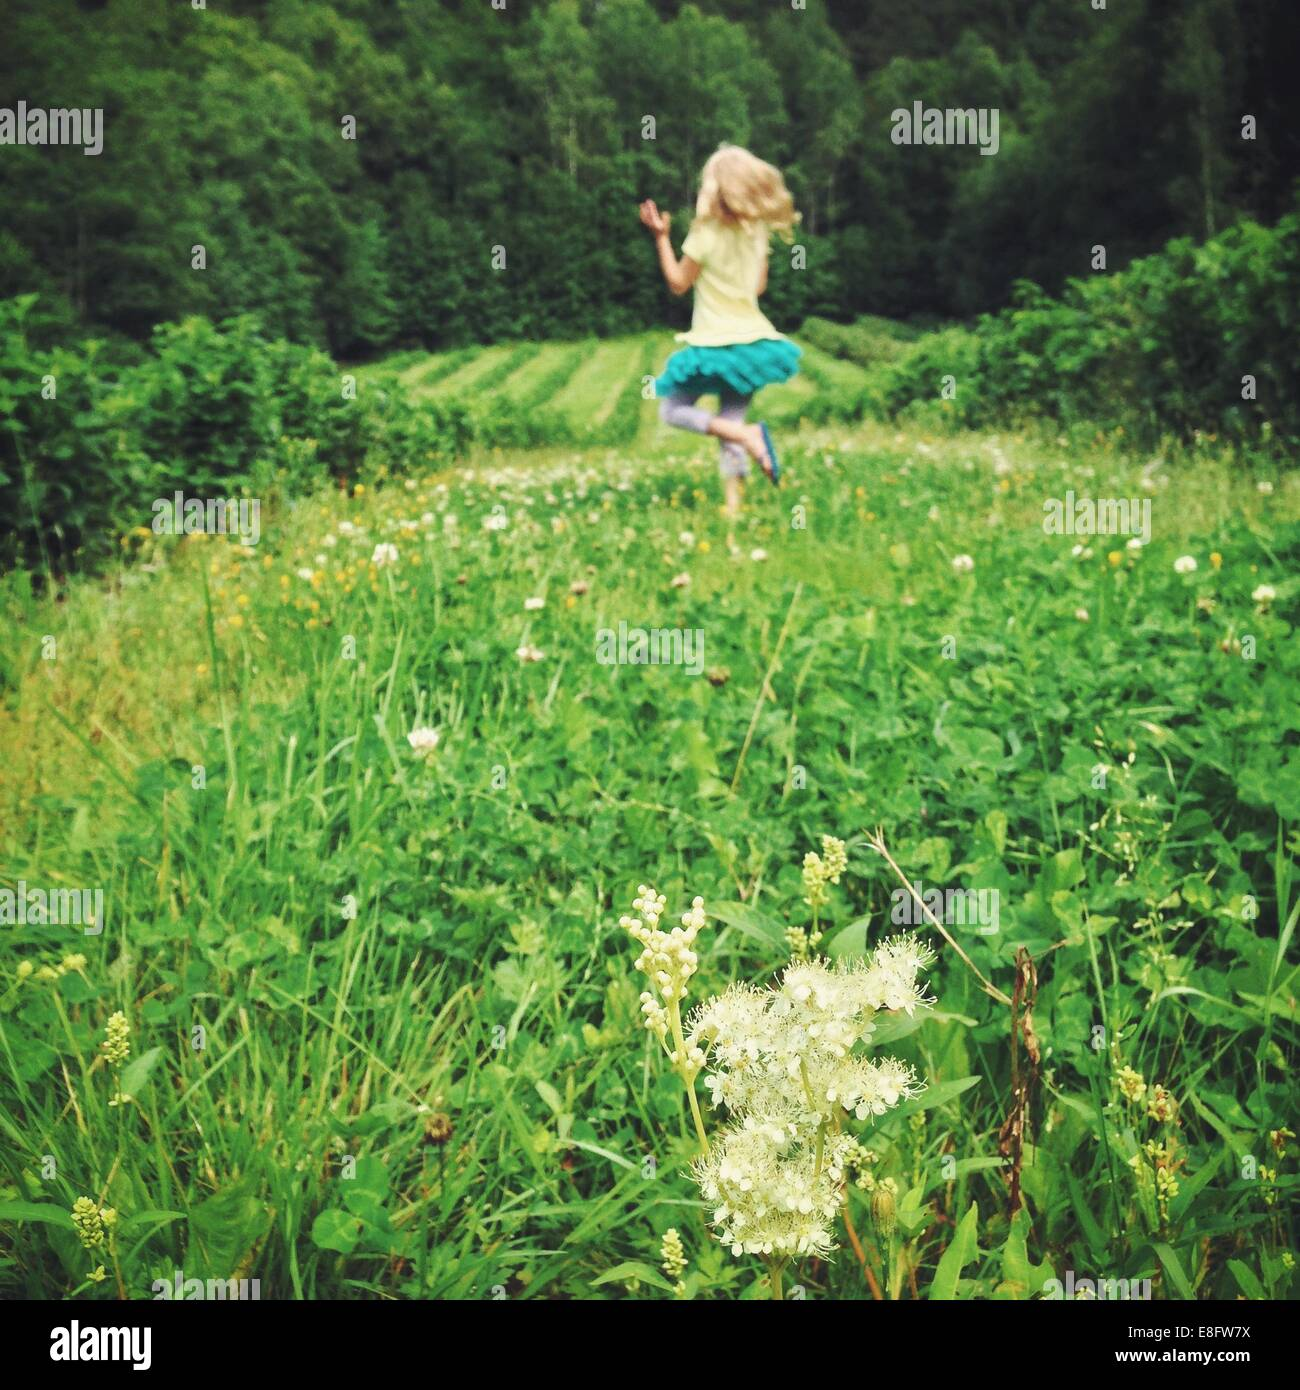 Girl (12-13) jumping on meadow Photo Stock